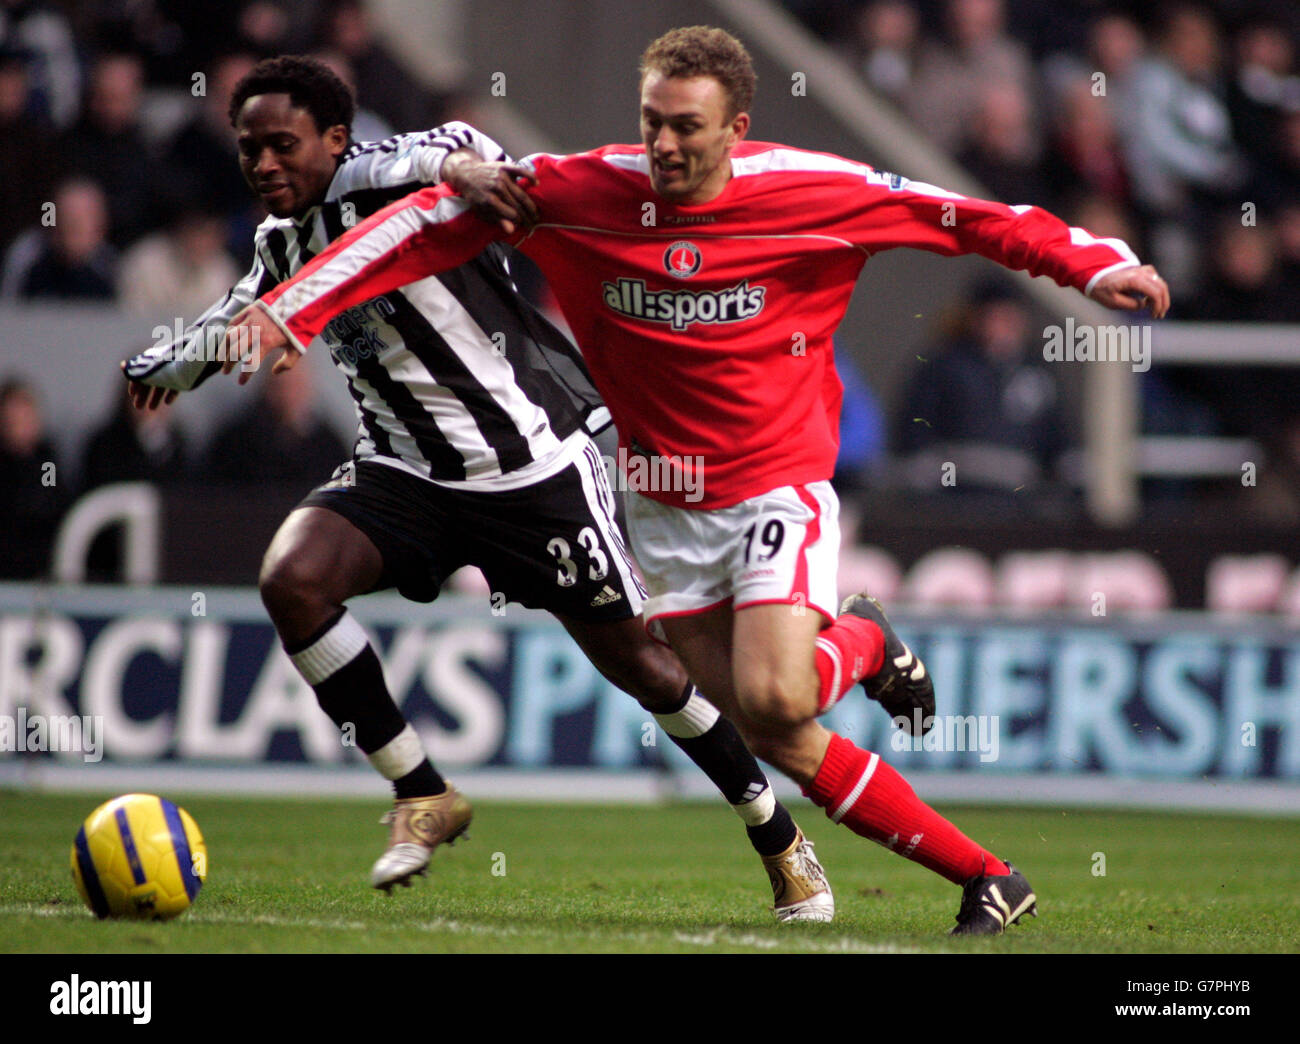 Soccer - FA Barclays Premiership - Newcastle United v Charlton Athletic - St James' Park - Stock Image